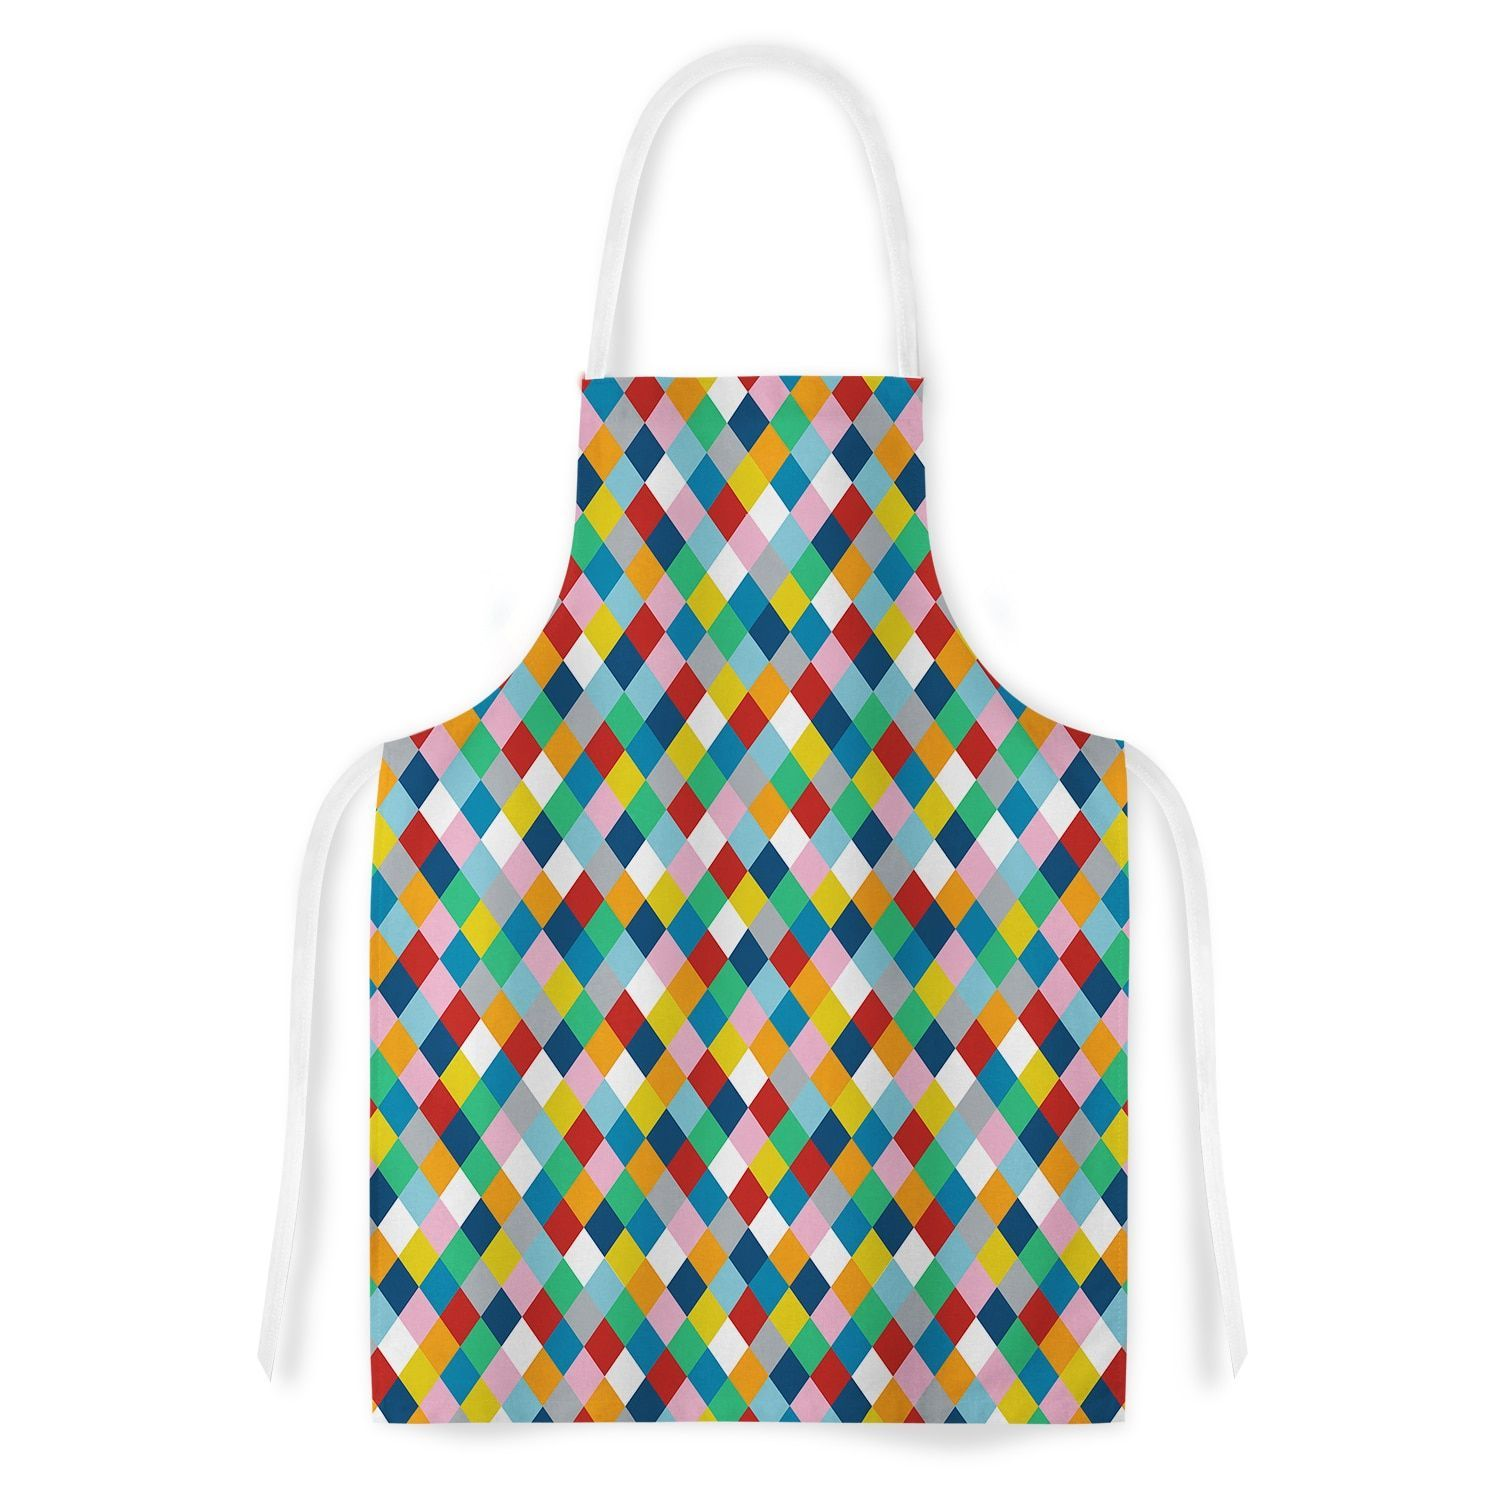 Kess InHouse Project M 'Harlequin' Artistic Apron